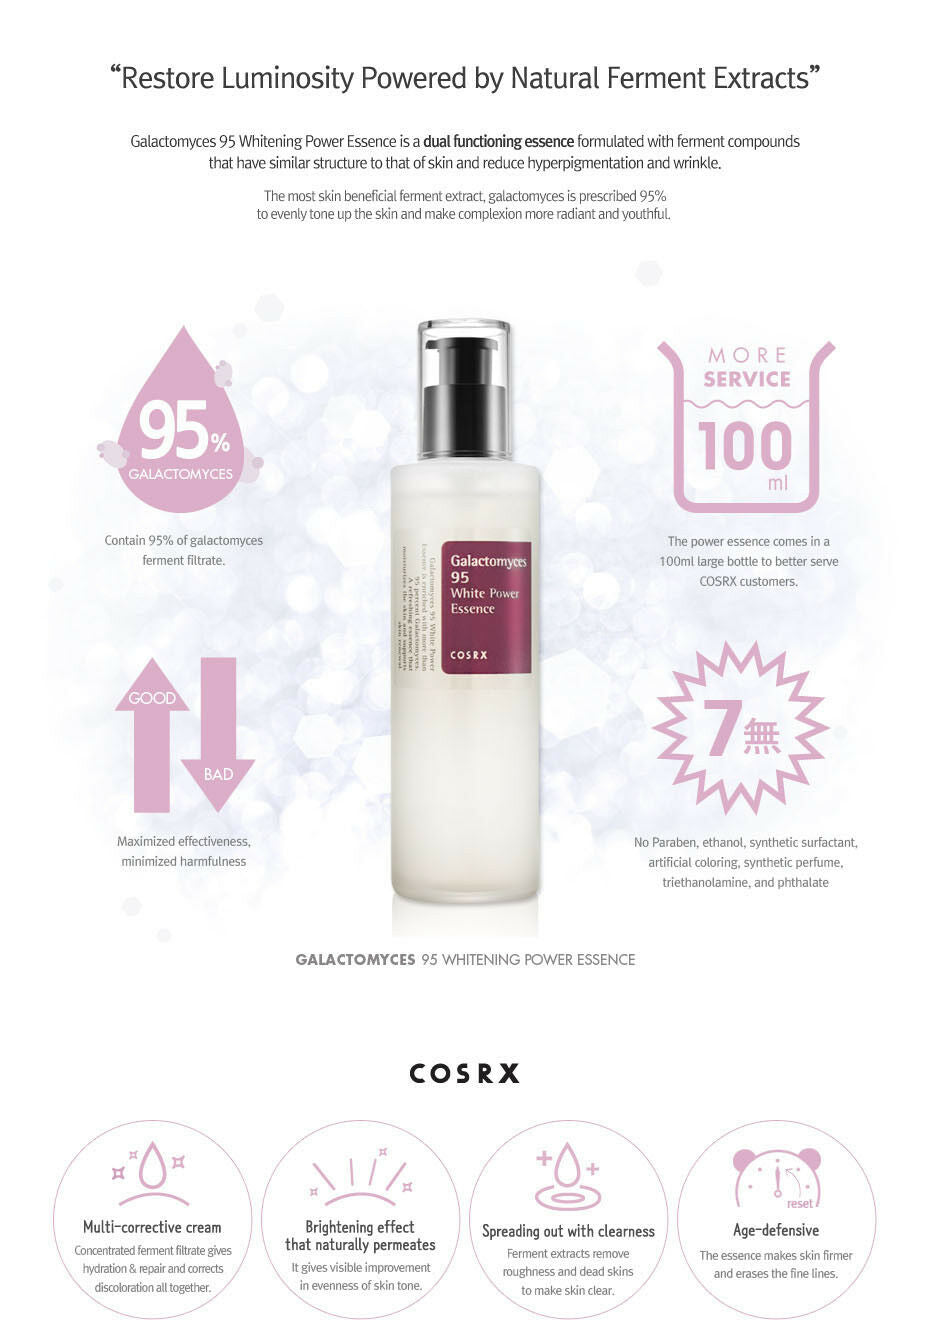 COSRX - Galactomyces 95 Tone Balancing Essence 100ml